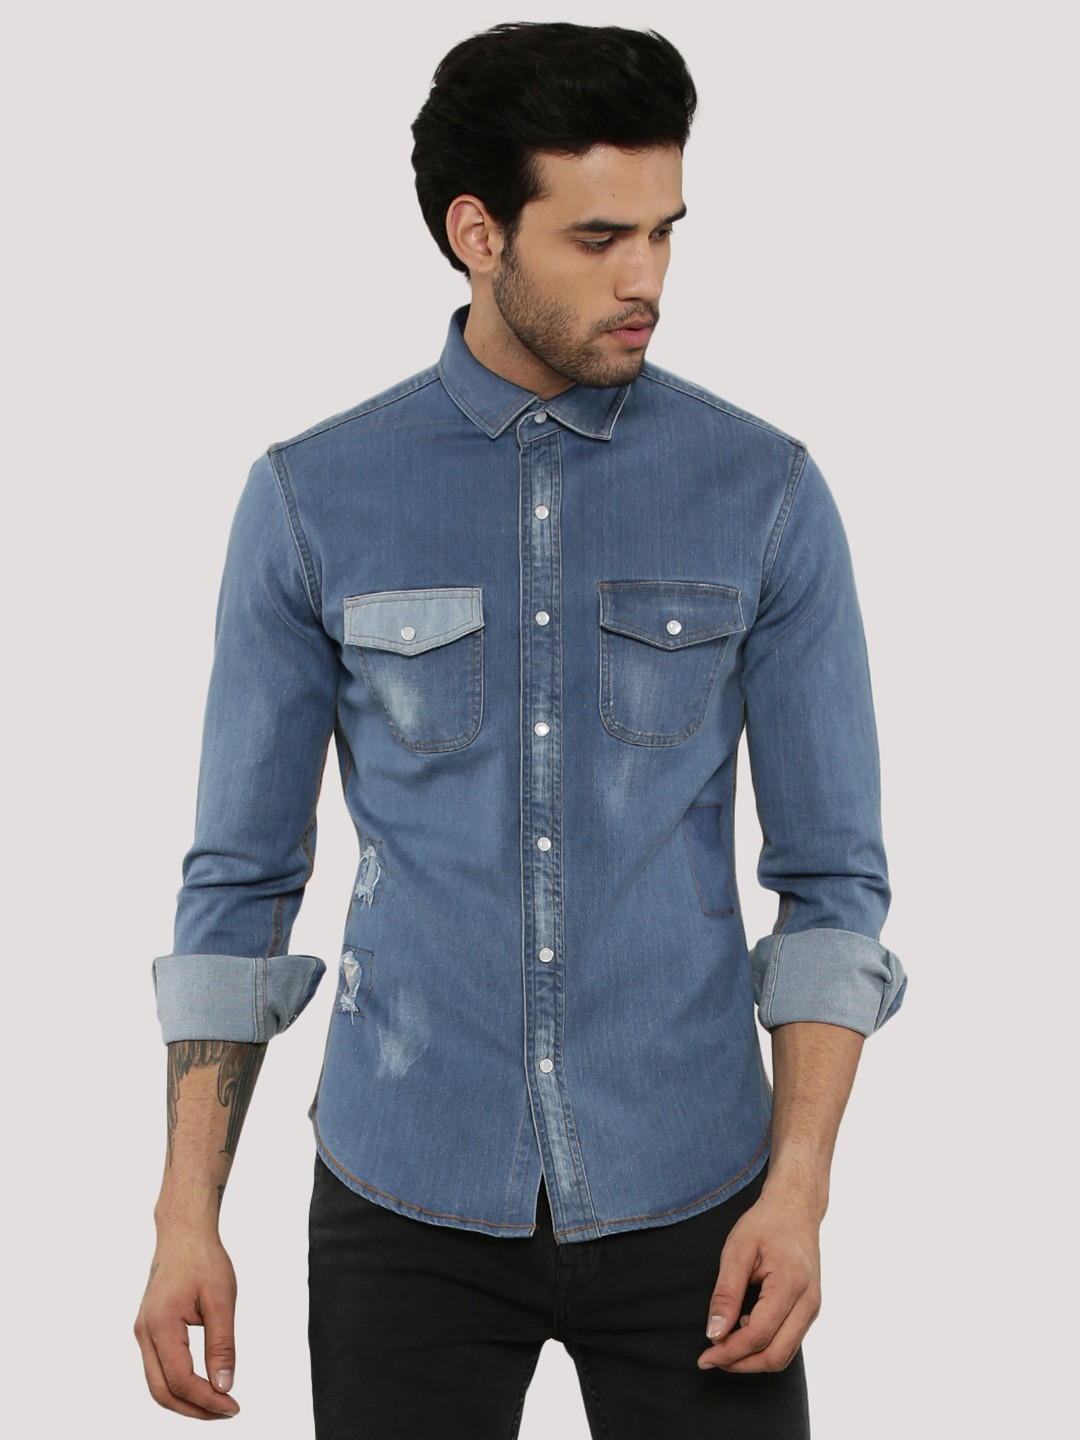 Denim Shirts - Buy Denim Shirts For Men & Women Online in India